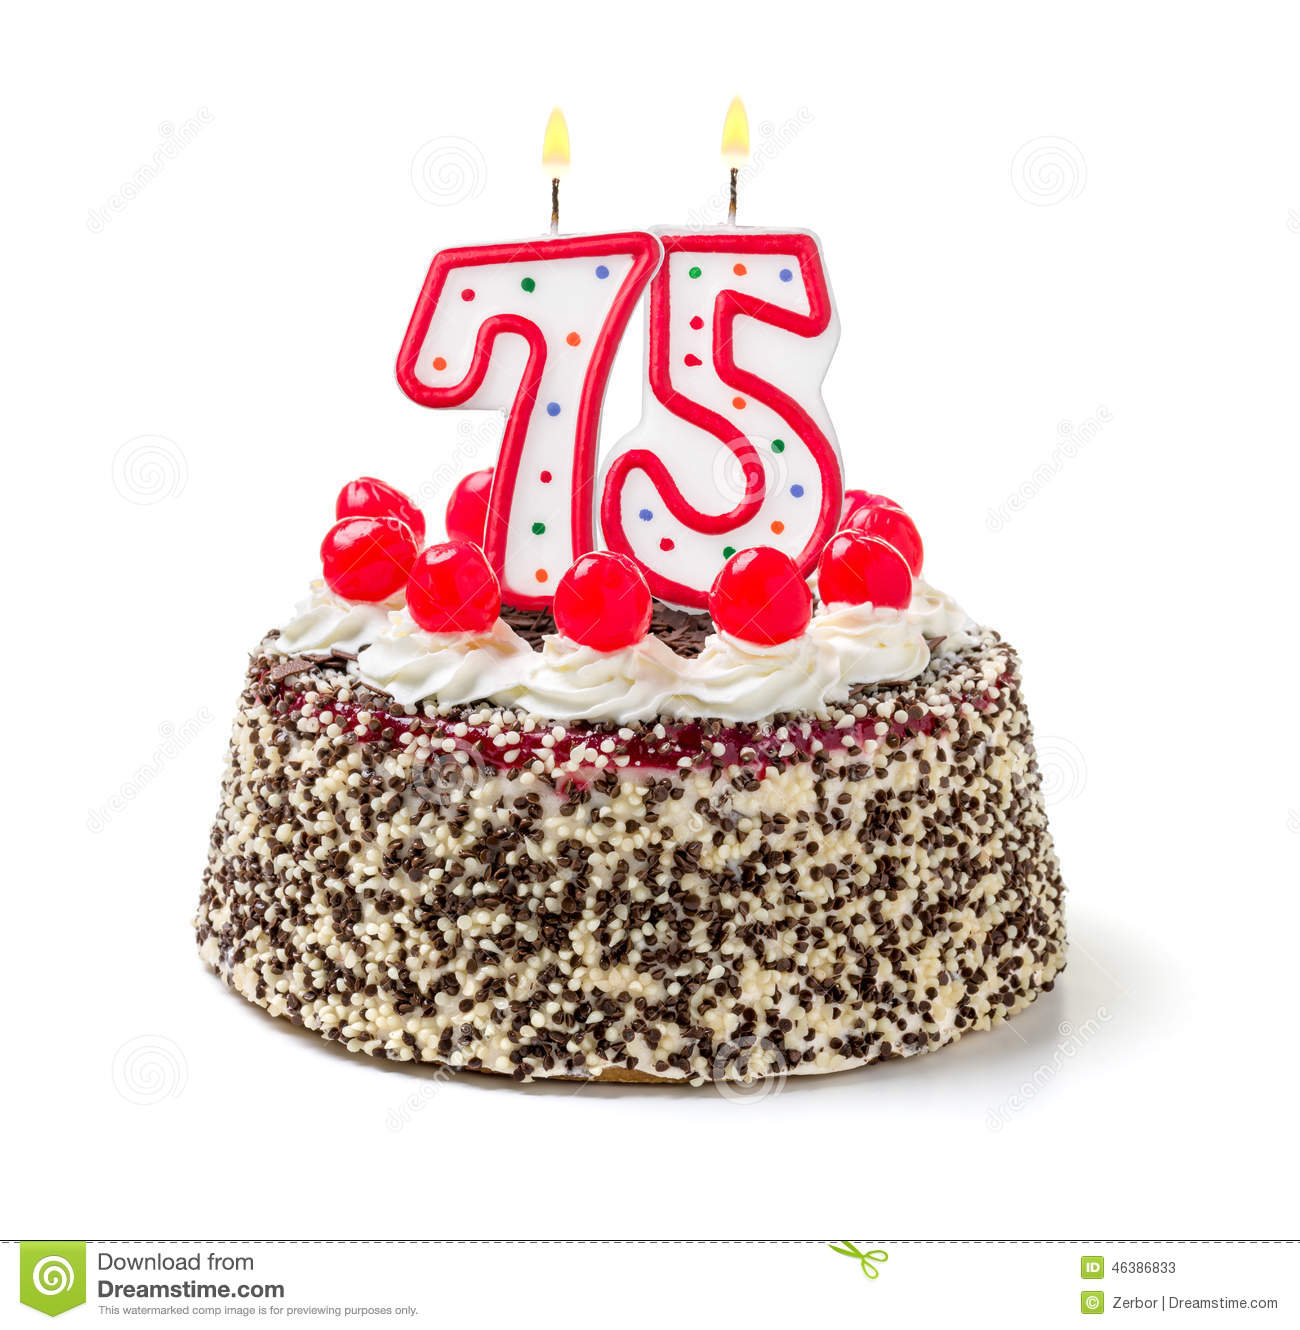 Birthday Cake With Candle Number 75 Stock Photo   Image  46386833